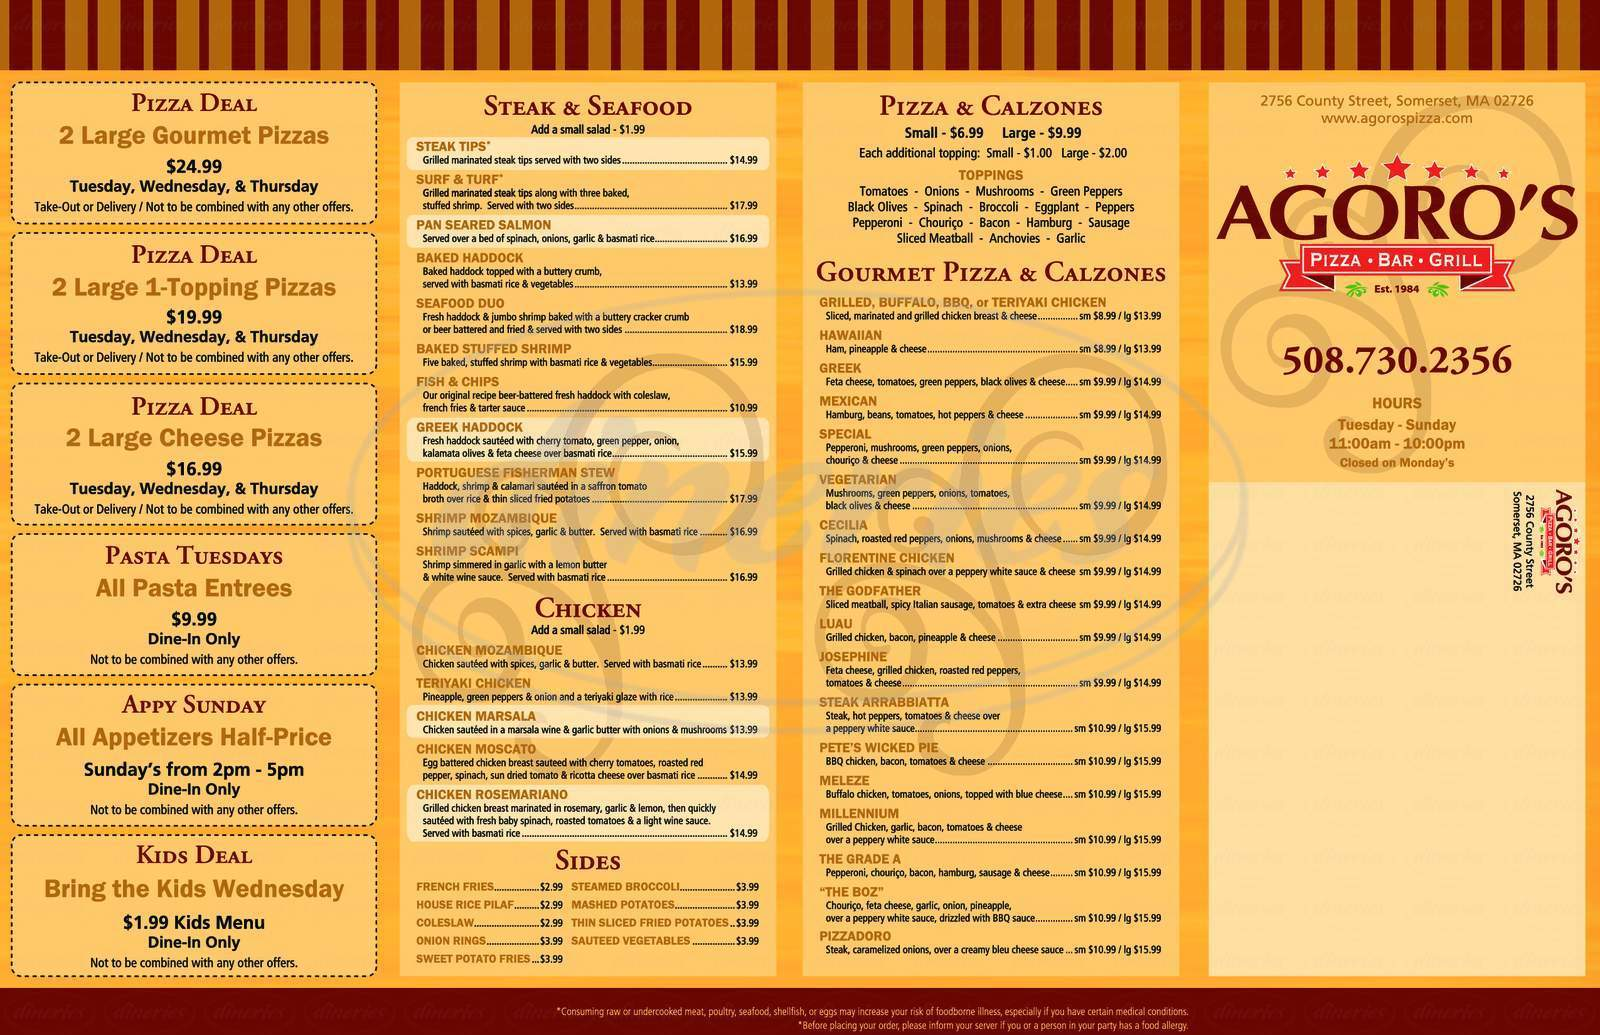 menu for Agoro's Pizza Bar & Grill